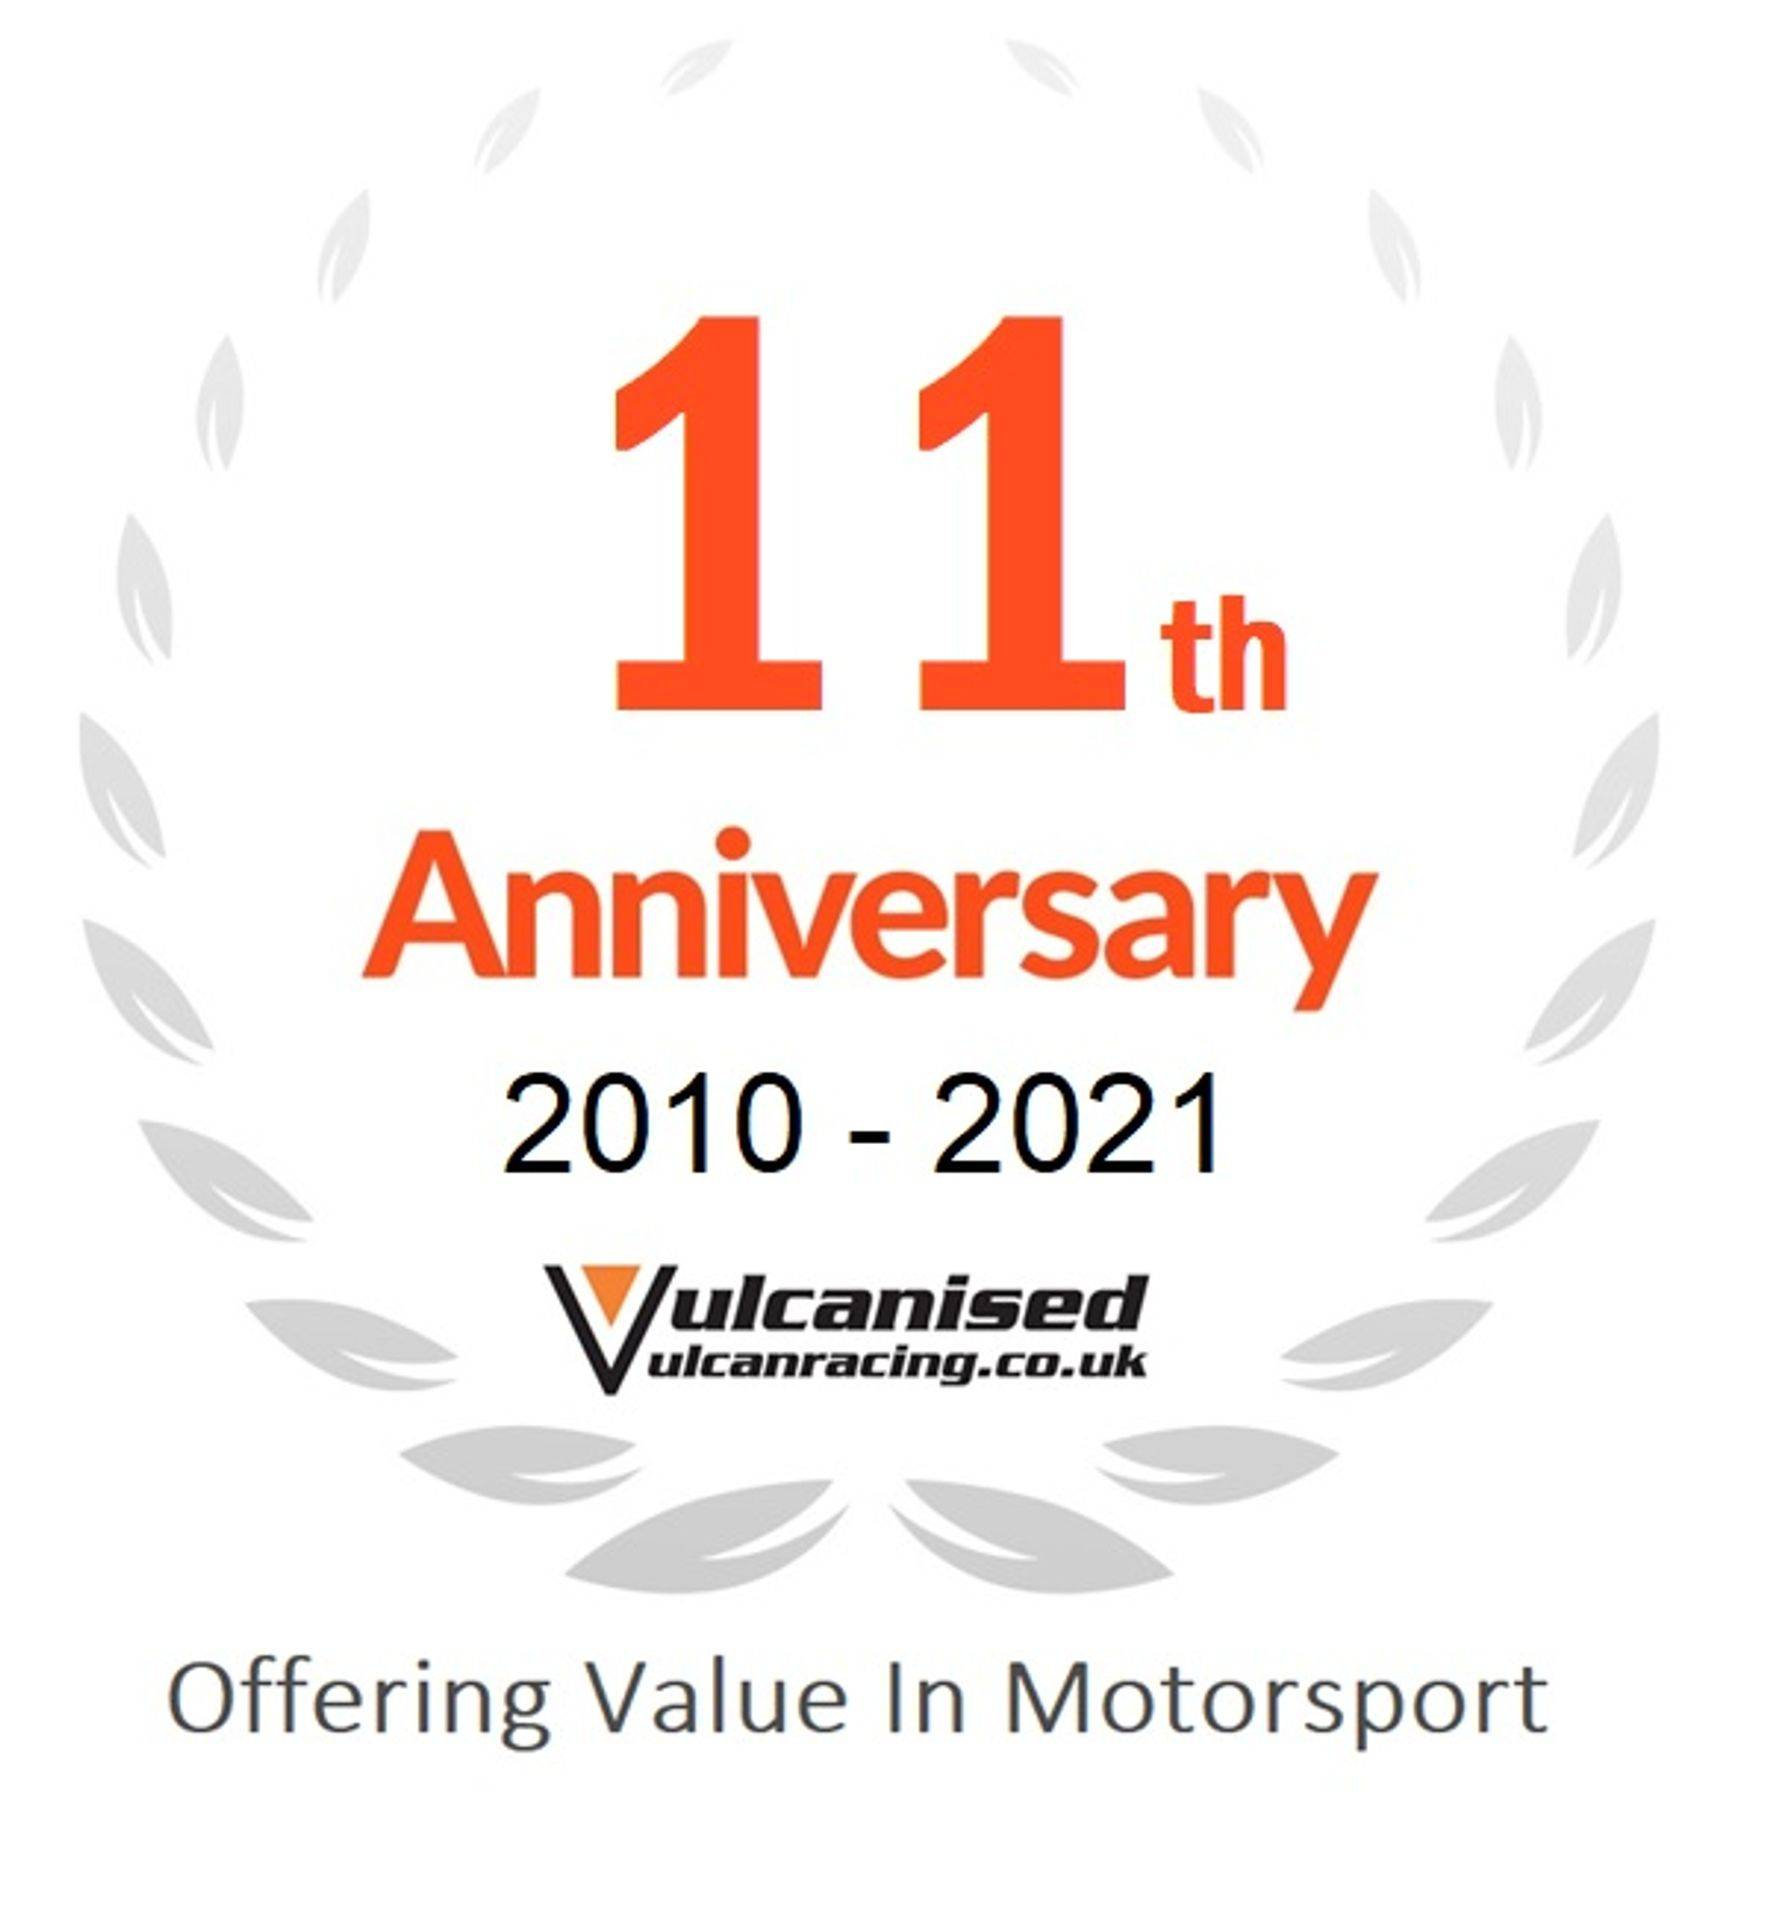 Celebrating 11 years of offering value in motorsport Vulcan Racing